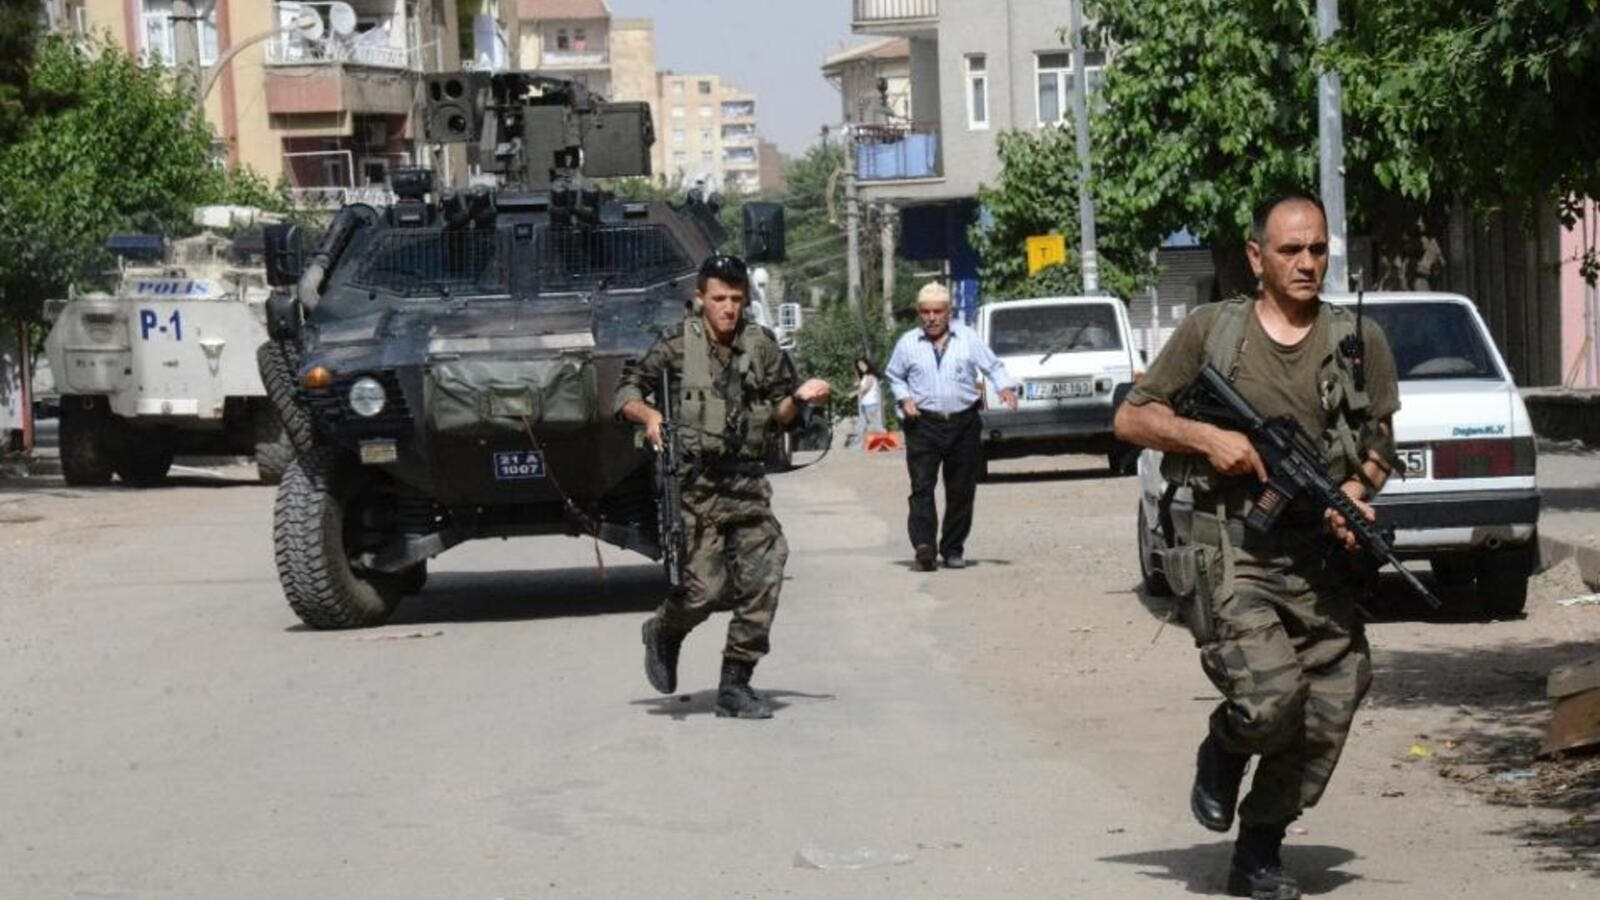 Turkish special forces are seen on patrol in Diyarbakir. (AFP/File)